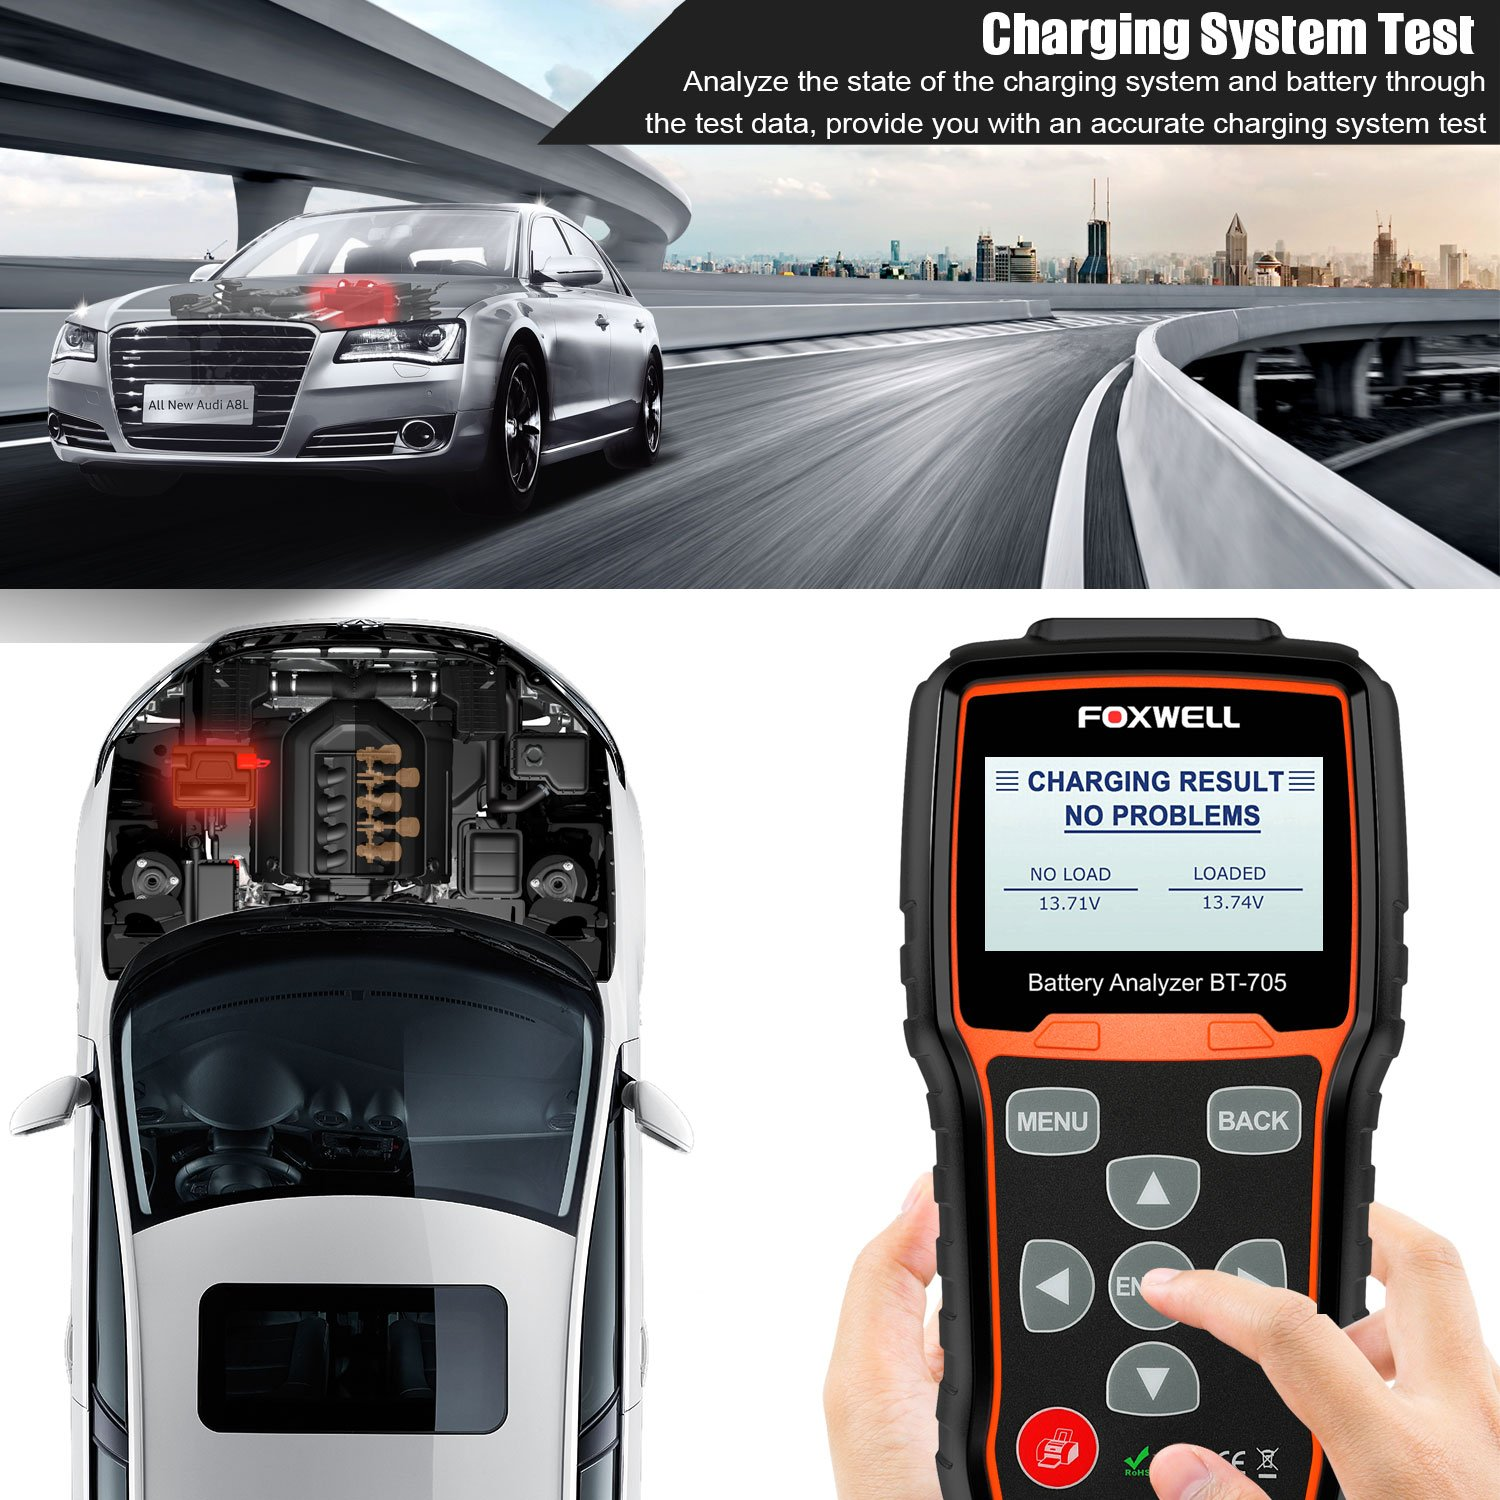 FOXWELL Battery Tester BT705 Automotive 100-2000 CCA Battery Load Tester 12V 24V Car Cranking and Charging System Test Tool Digital Battery Analyzer for Cars and Heavy Duty Trucks by FOXWELL (Image #6)